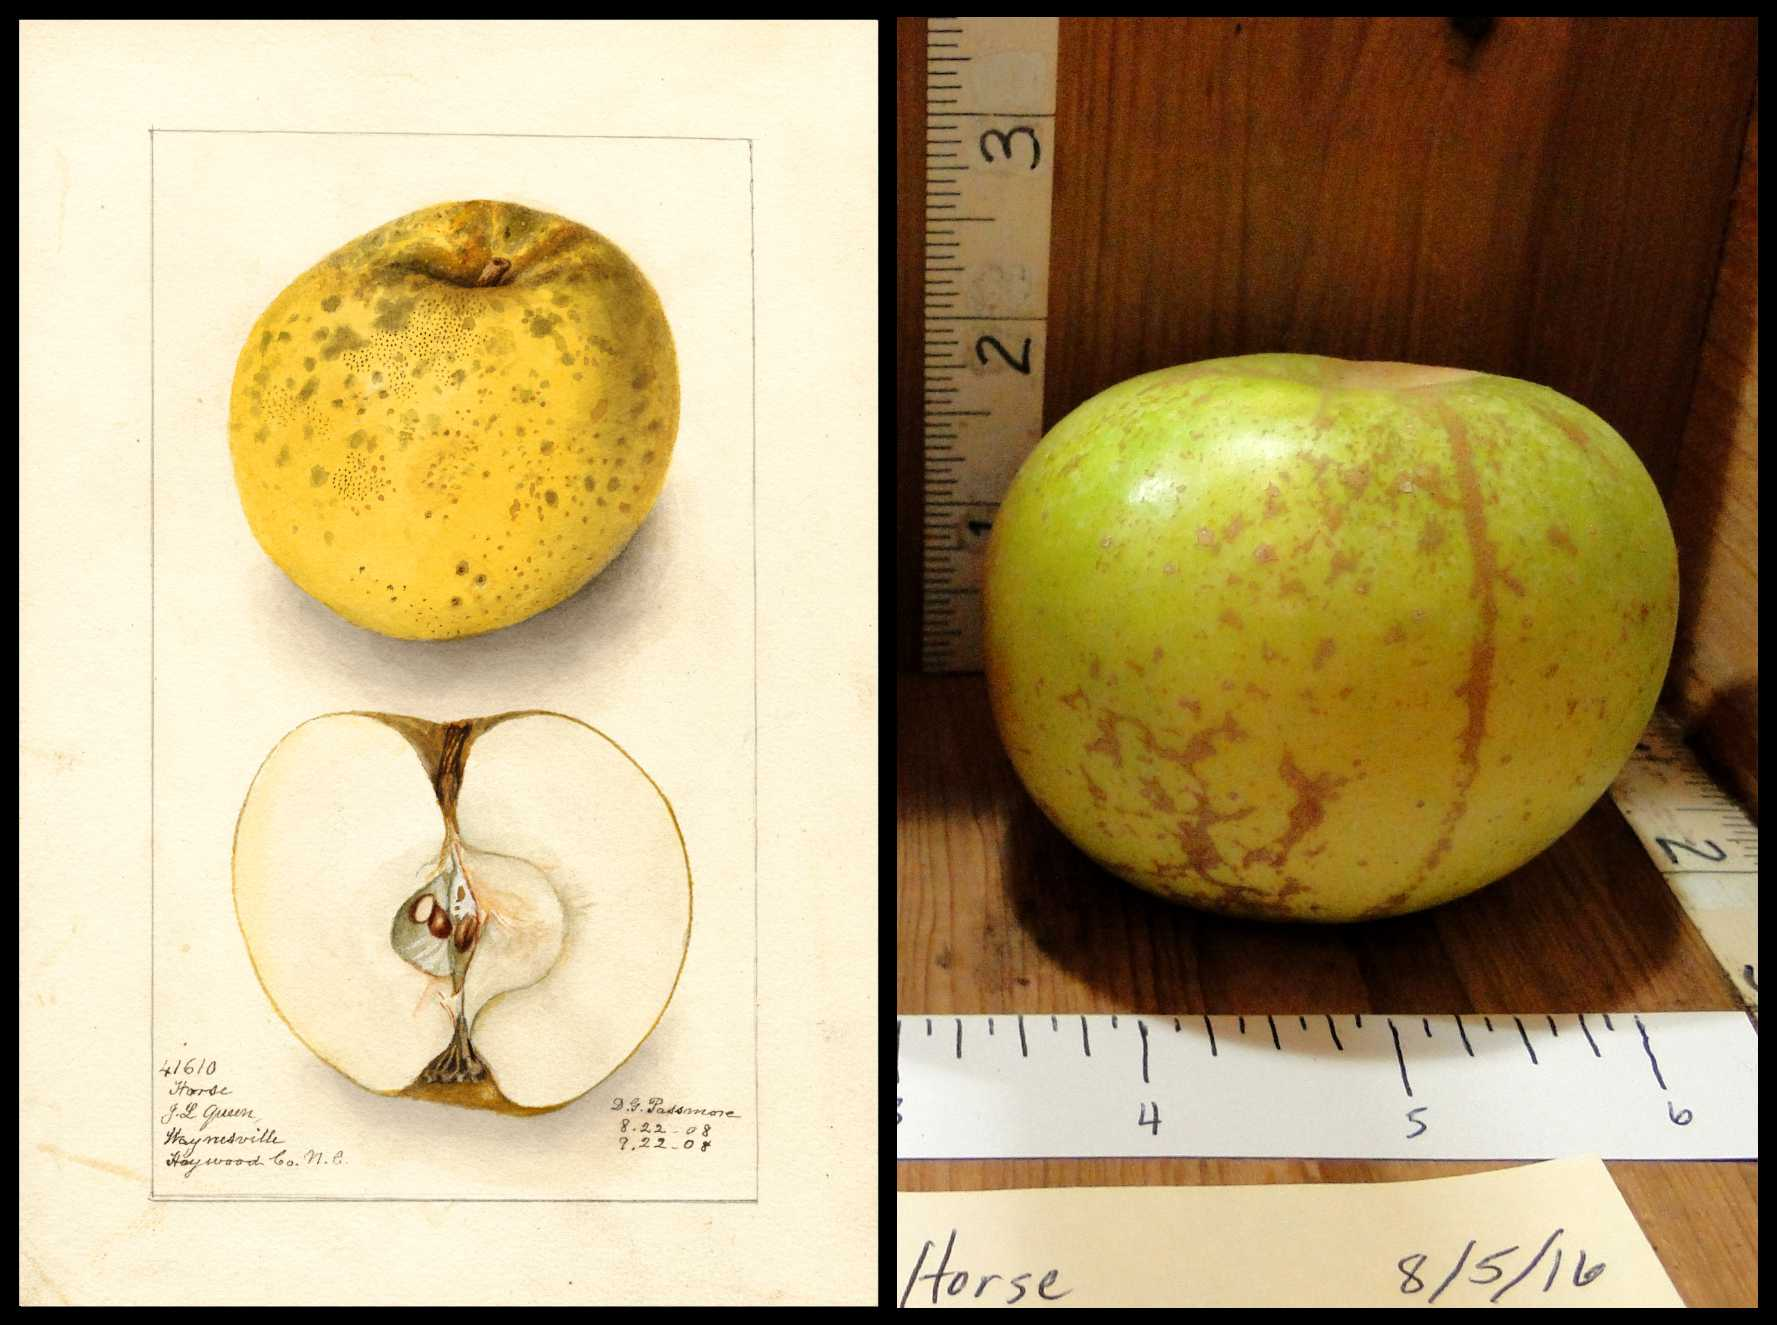 green apple with rough brown spots and stripes